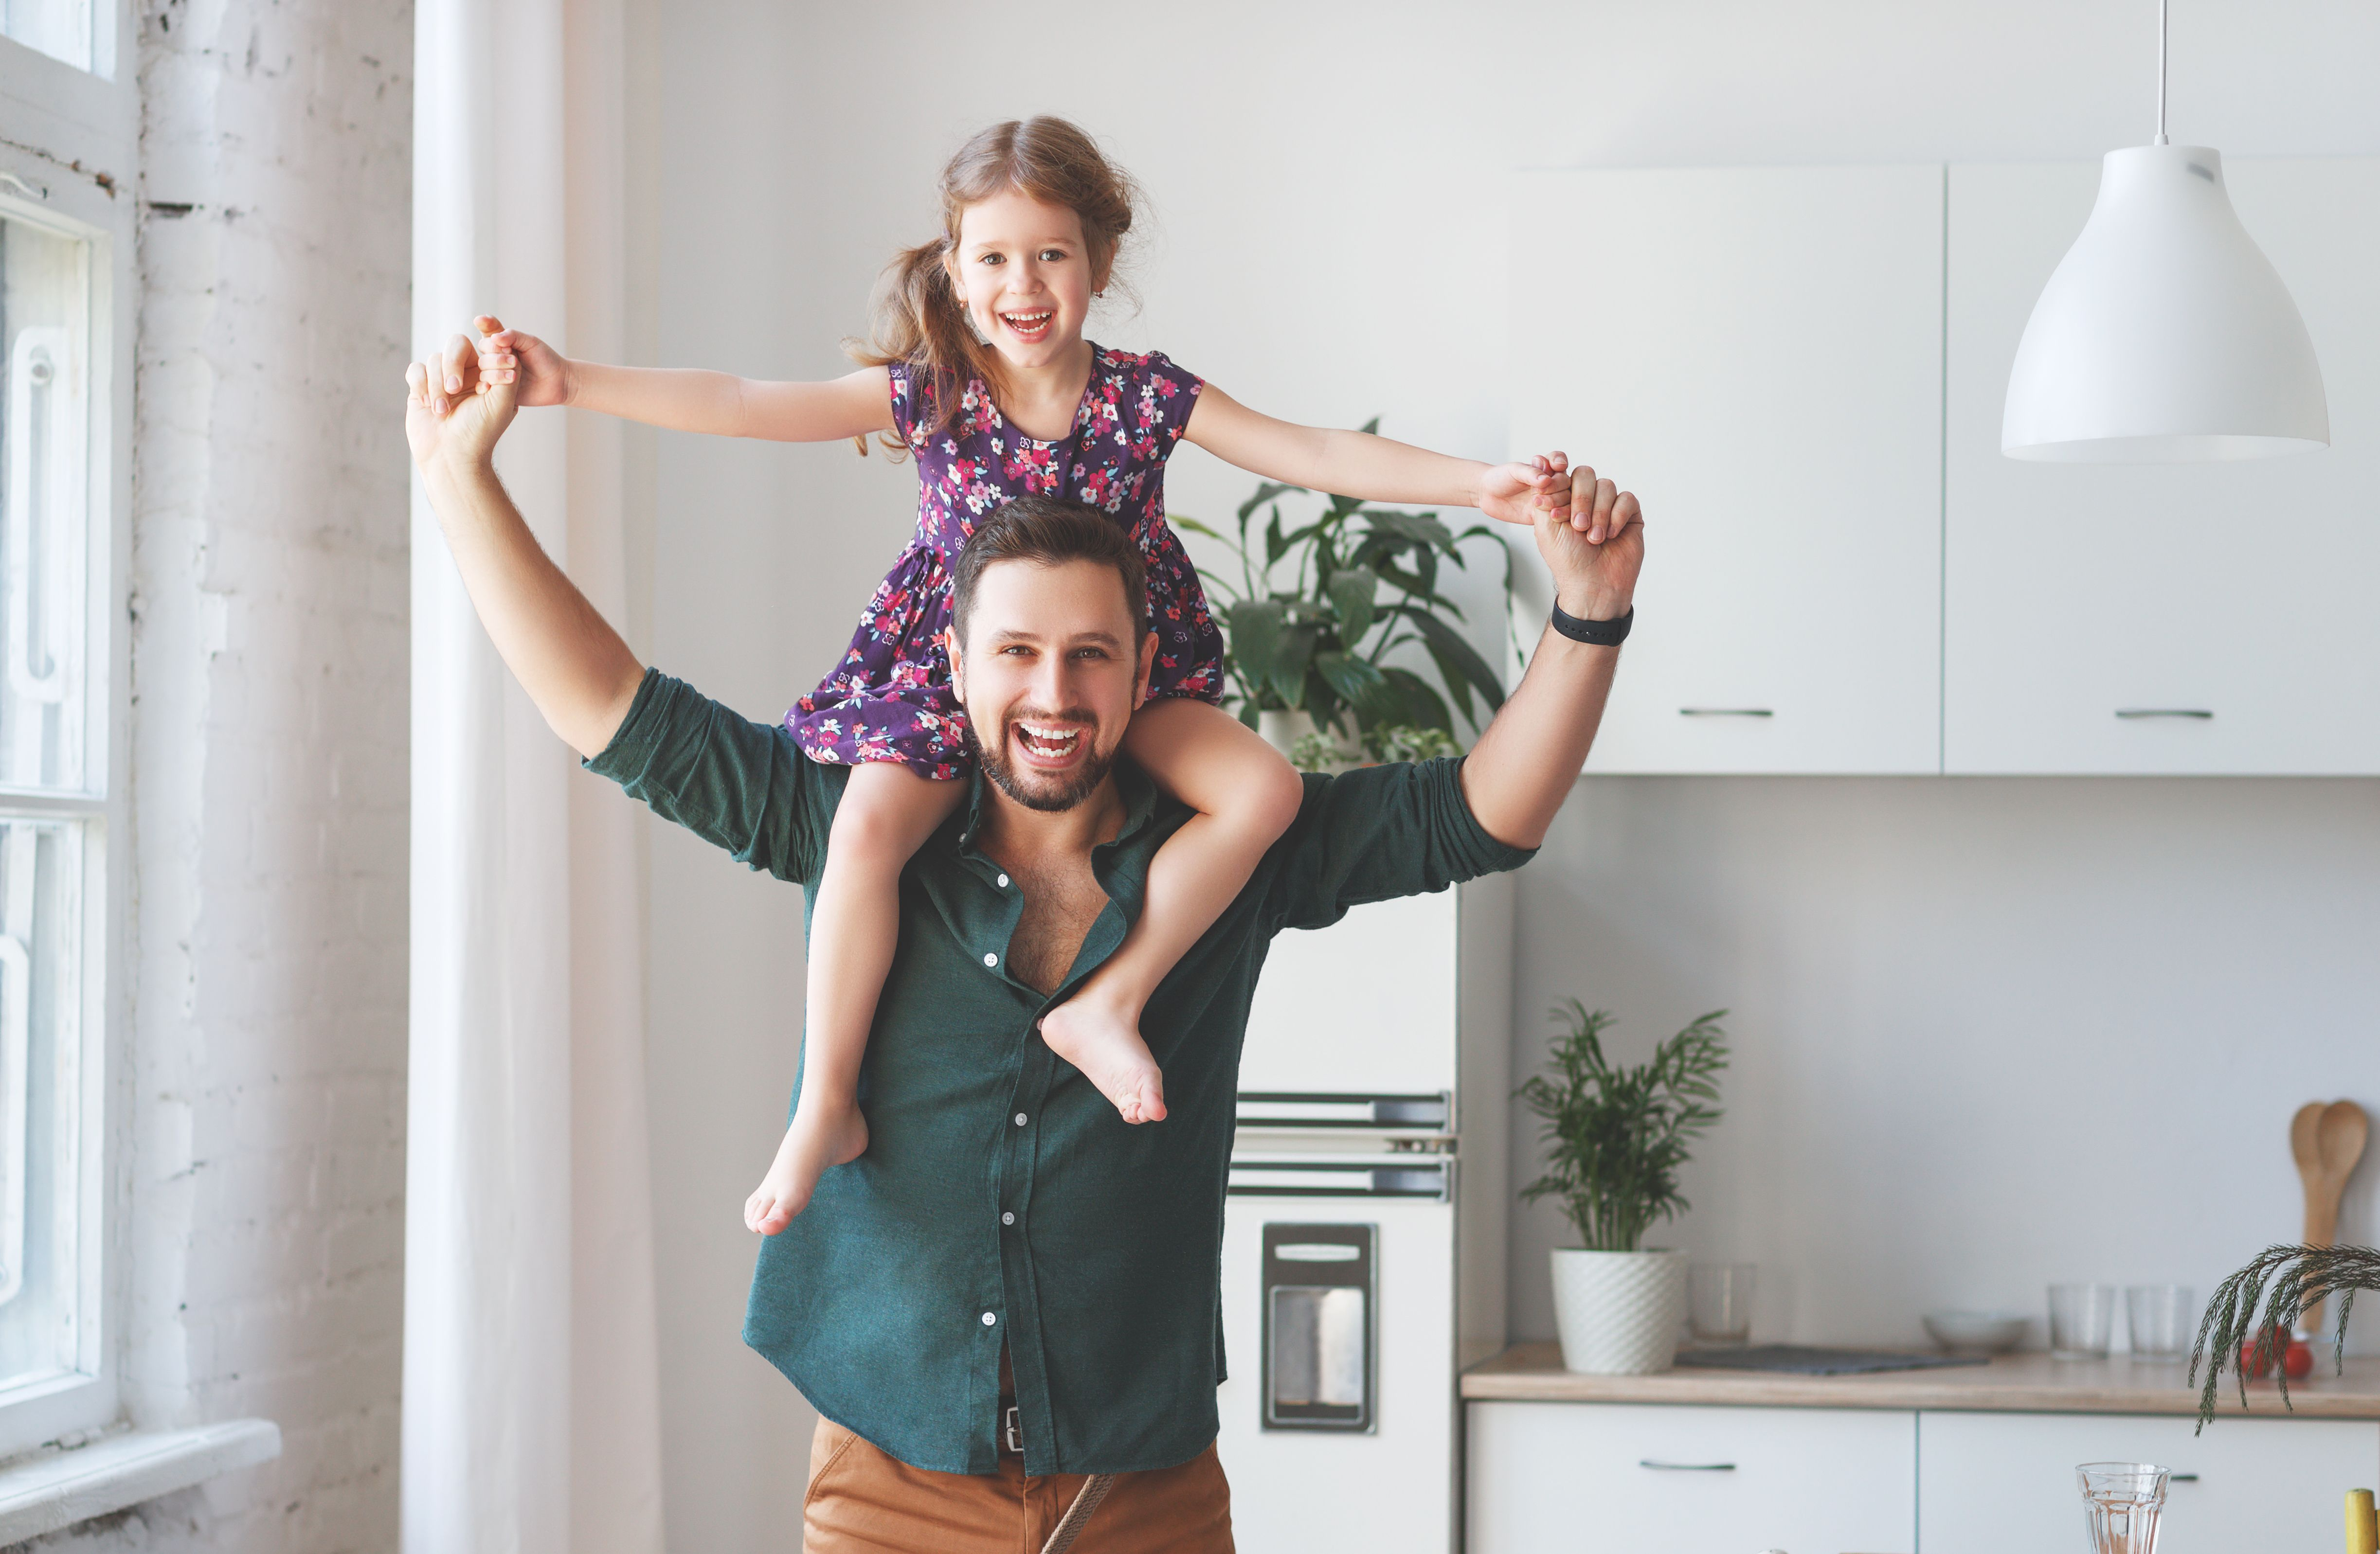 A doting father playing with his little girl.   Source: Shutterstock